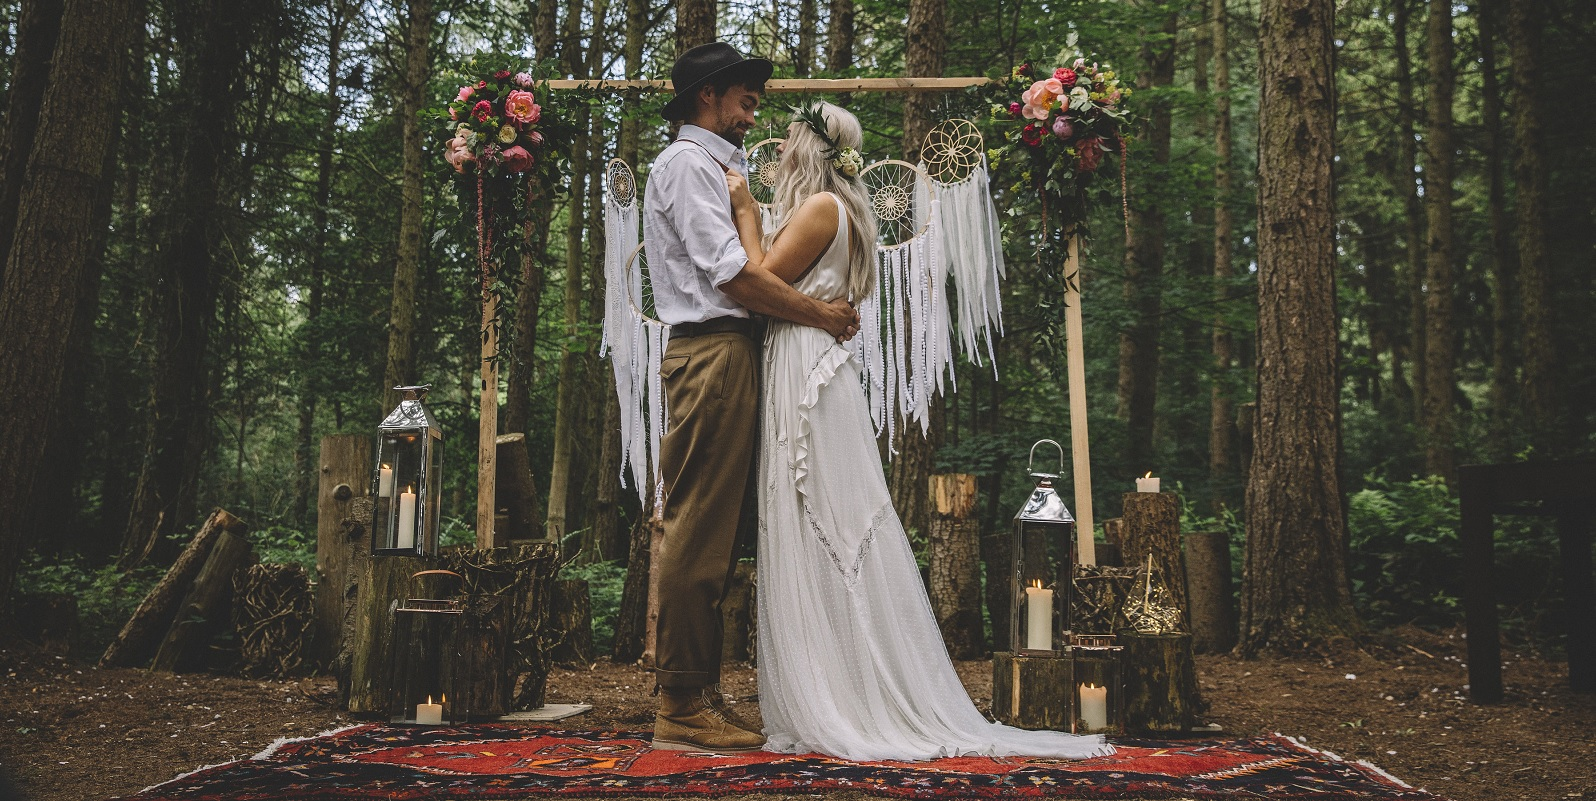 Camp Katur Bohemian Woodland Wedding Photoshoot